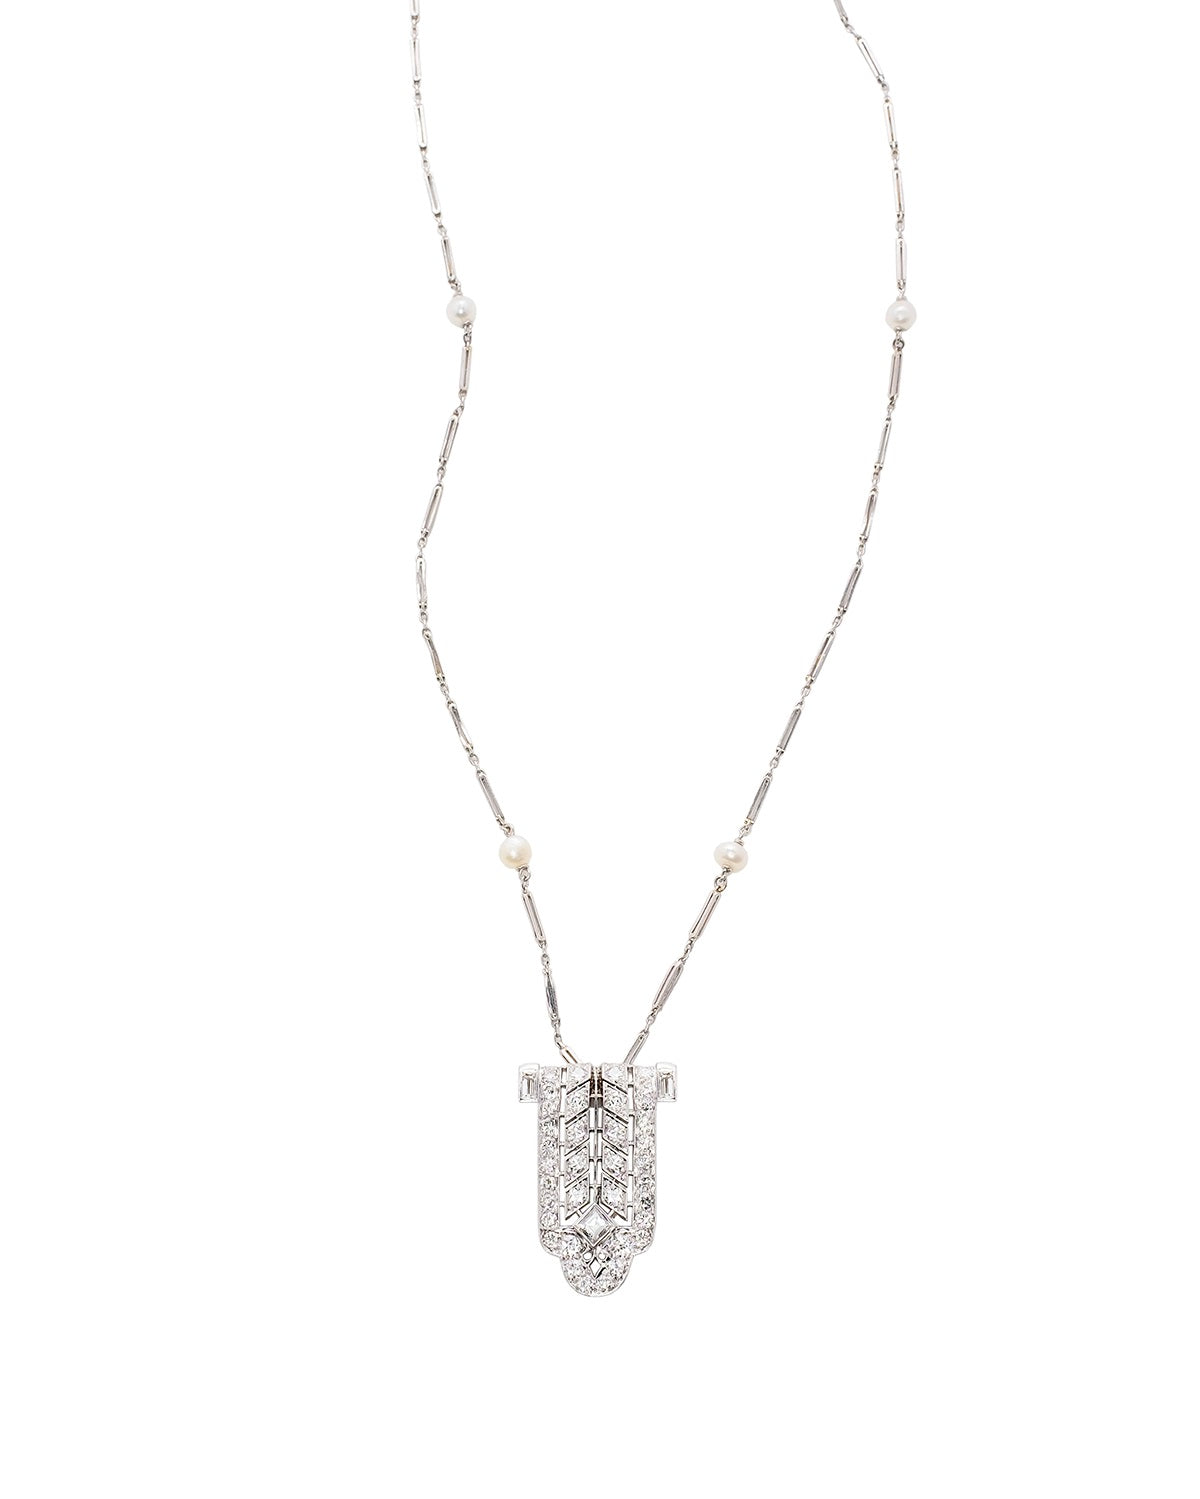 Art Deco Pendant in Platinum and Diamond with Pearl accents.